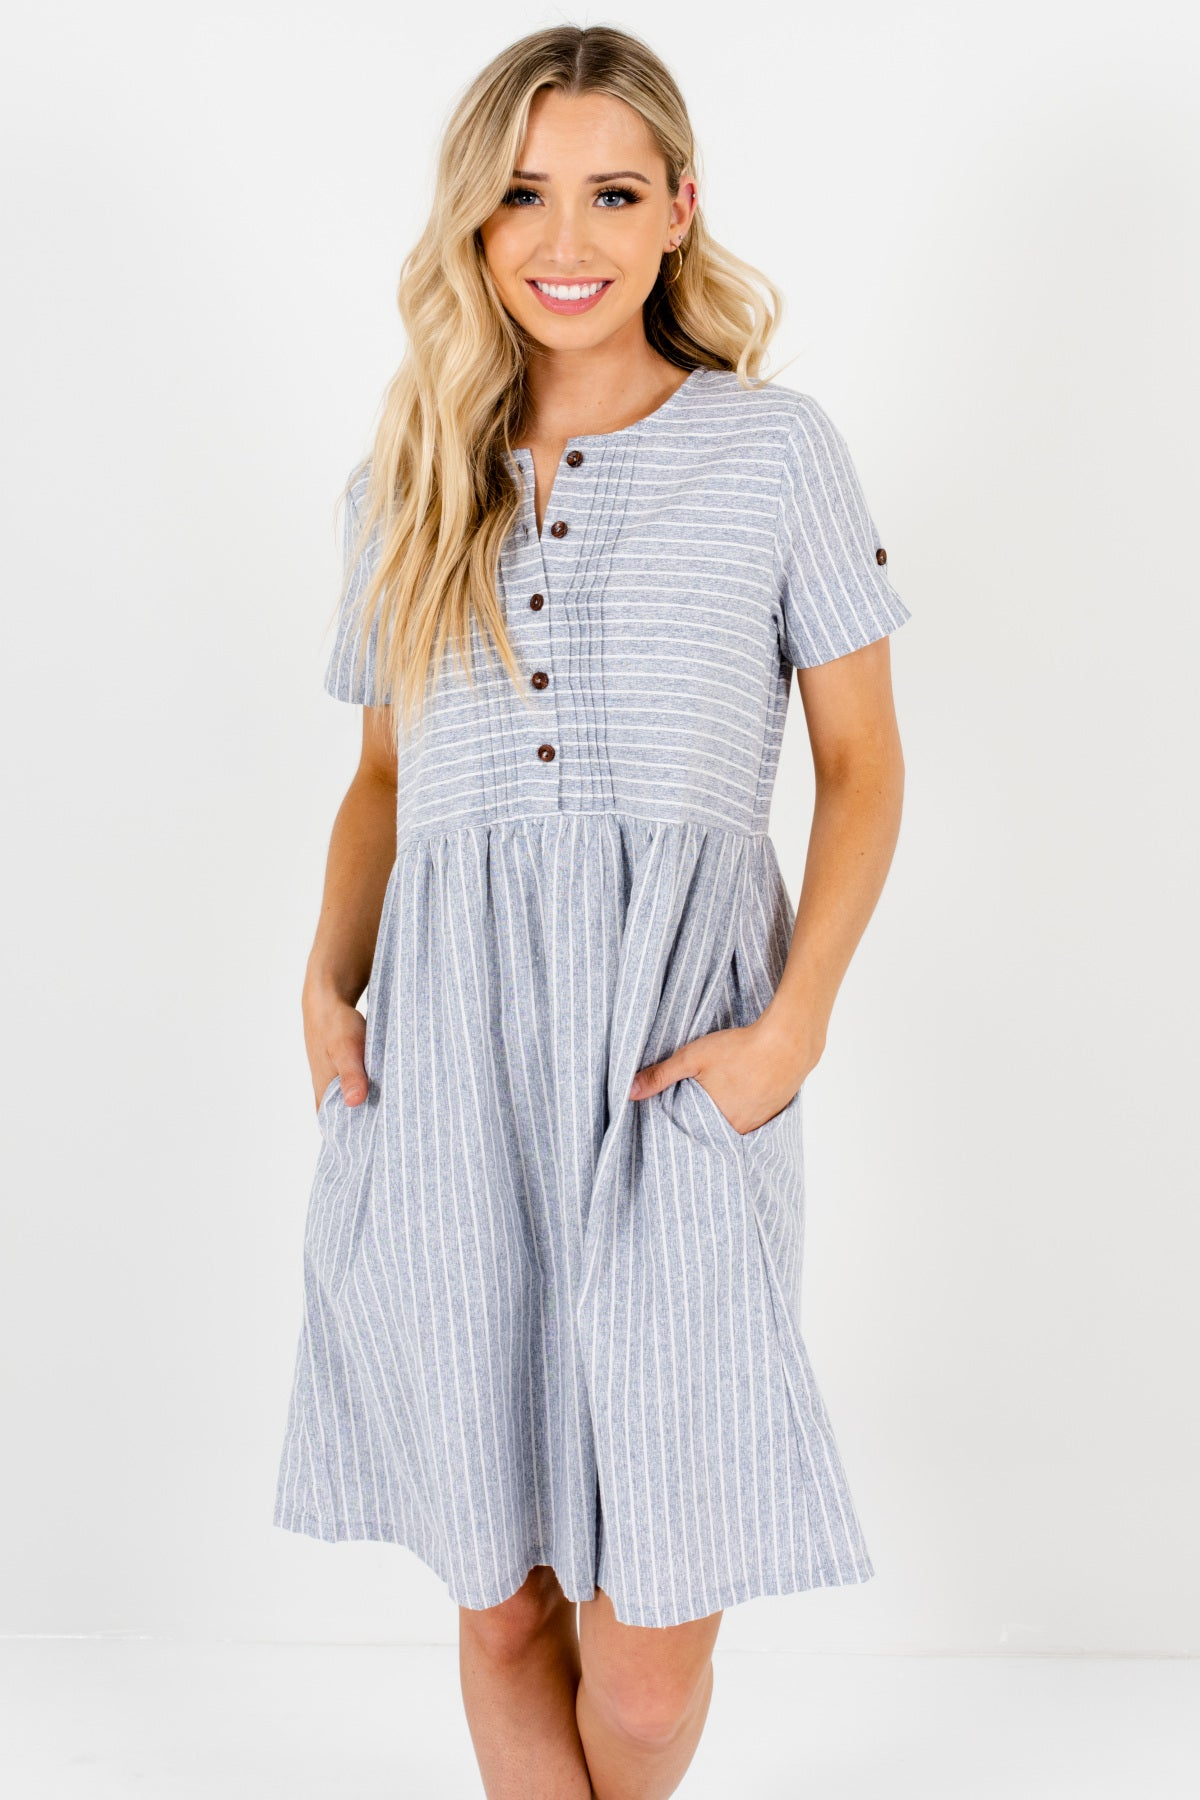 Heather Blue Gray Striped Button-Up Mini Dresses for Women